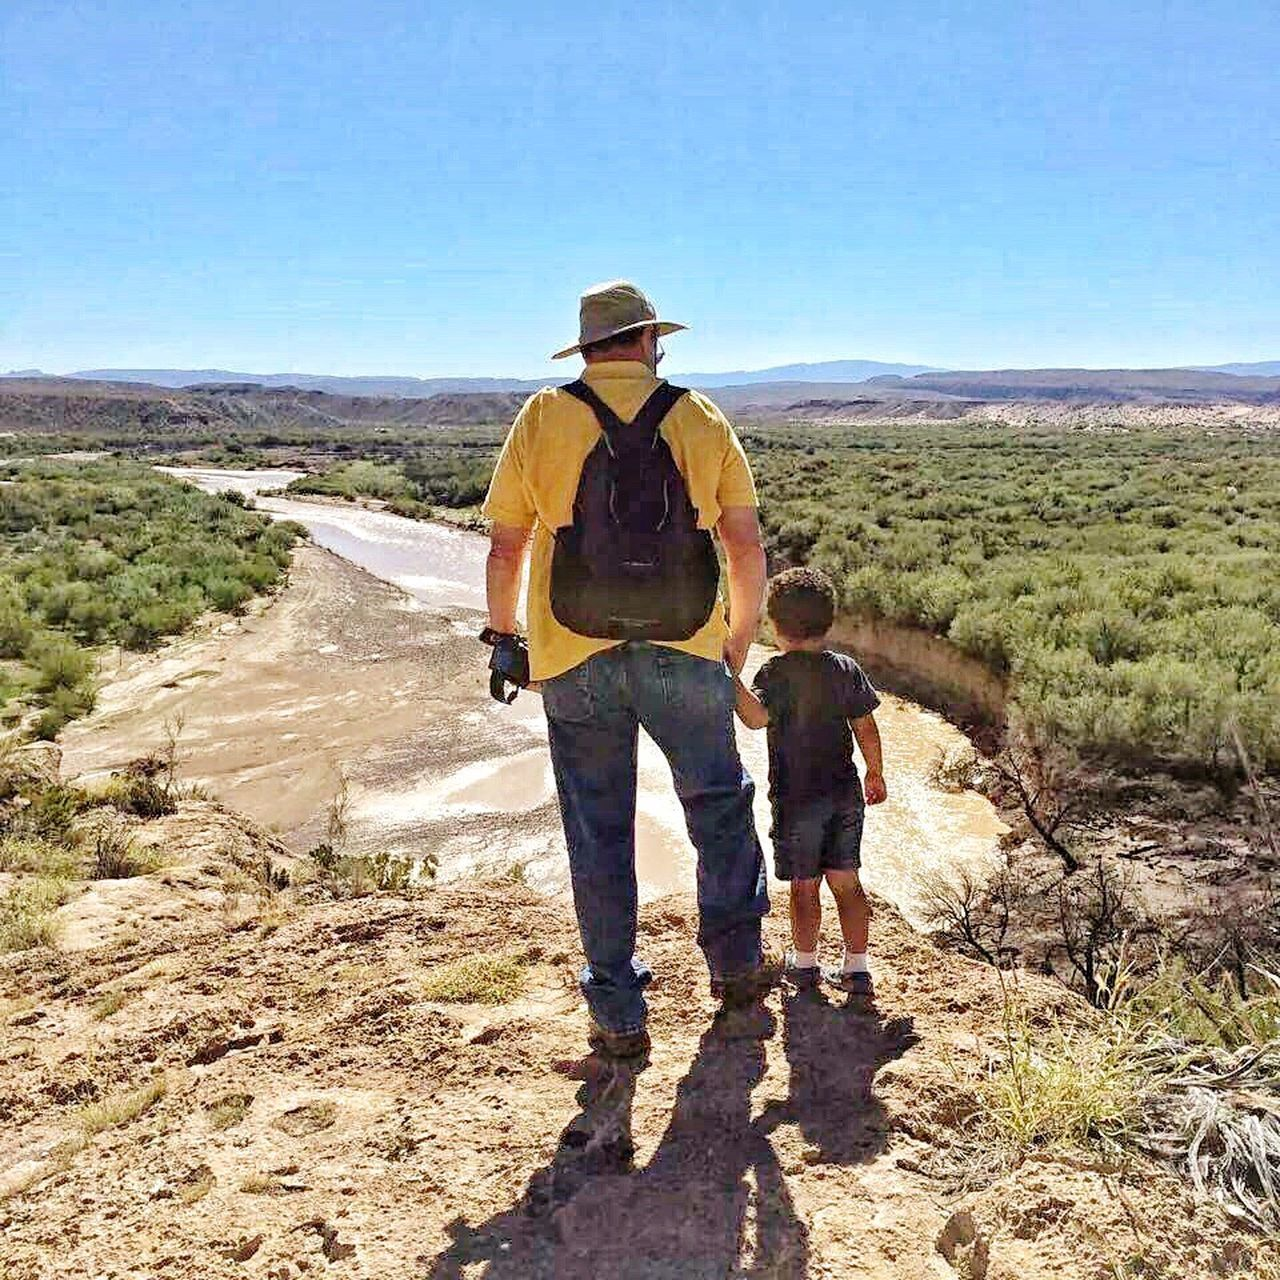 Two People Full Length Hiking Leisure Activity Standing Day Outdoors Sunlight Adventure Nature Big Bend National Park Area Río Grande Father & Son Exploring Desert Beauty